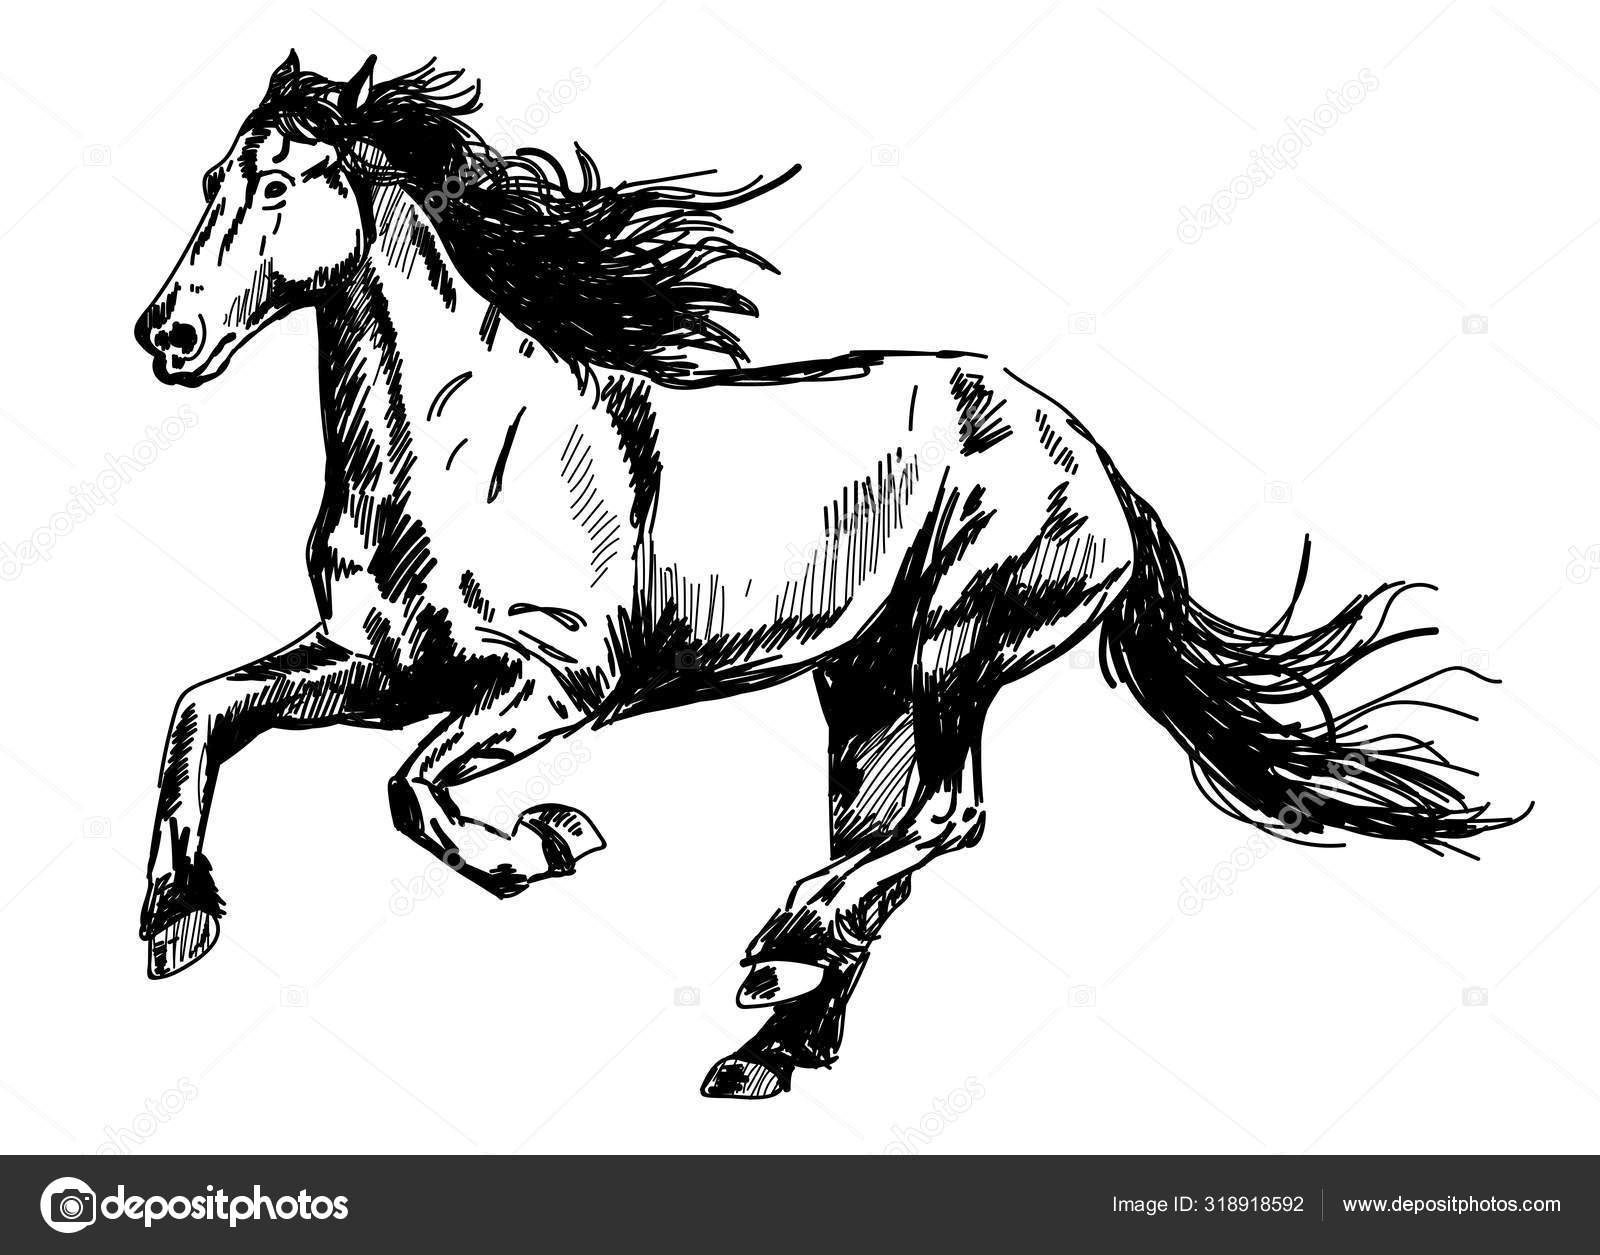 Running Horse Vector Freehand Drawing Engraving Stock Vector C Rant Goi 318918592